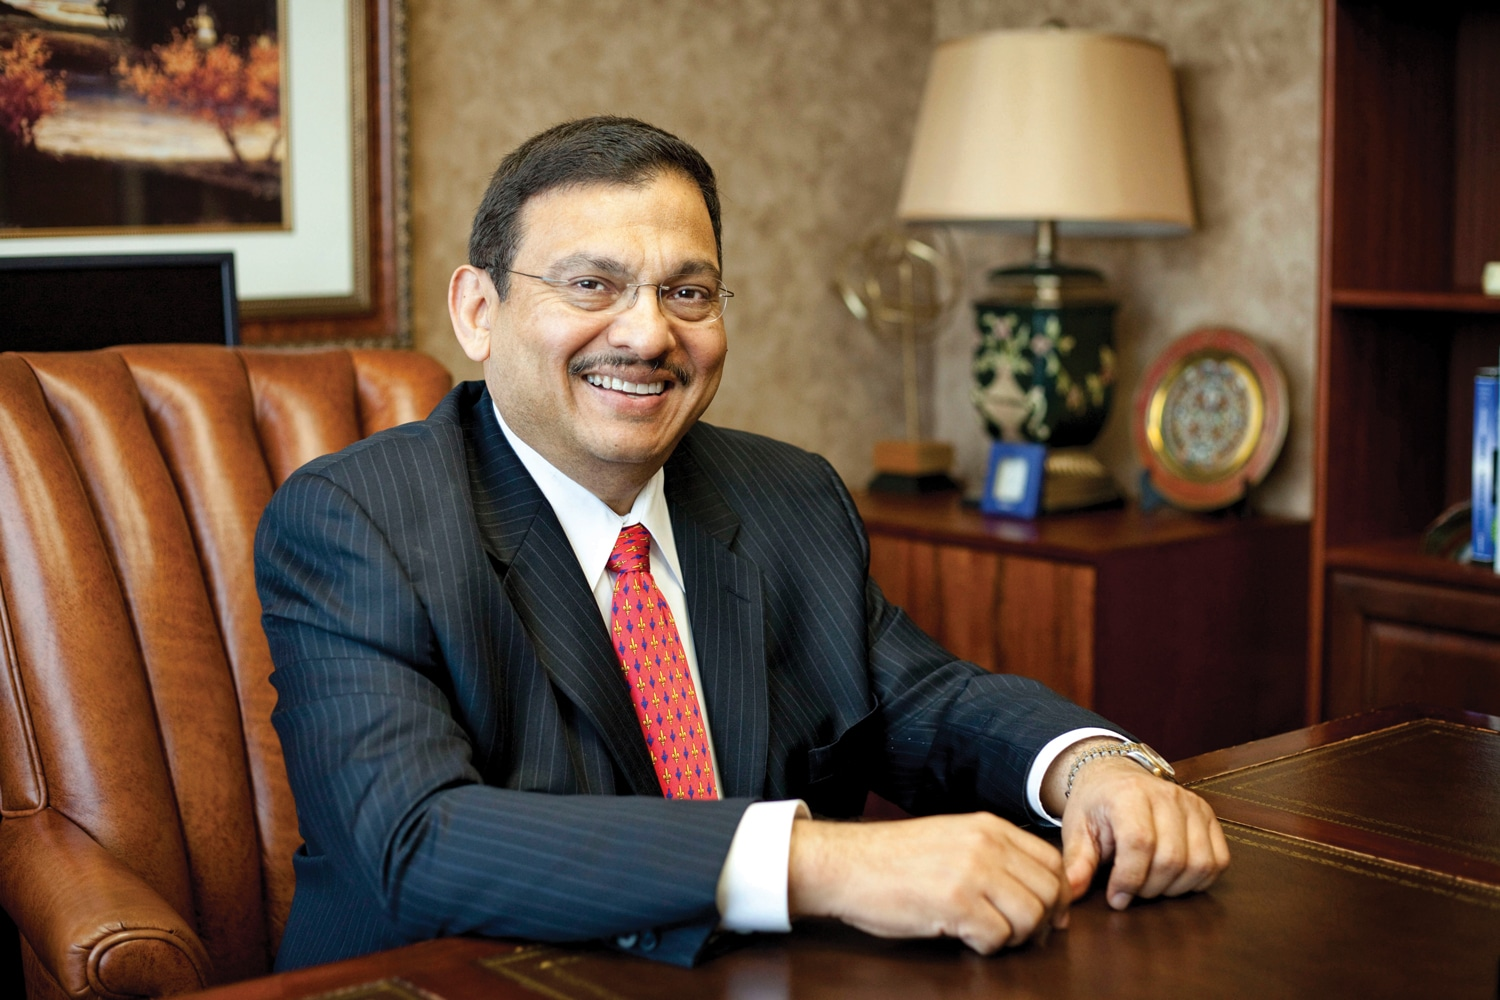 Dr Amitabh Shukla Sugar Land Texas